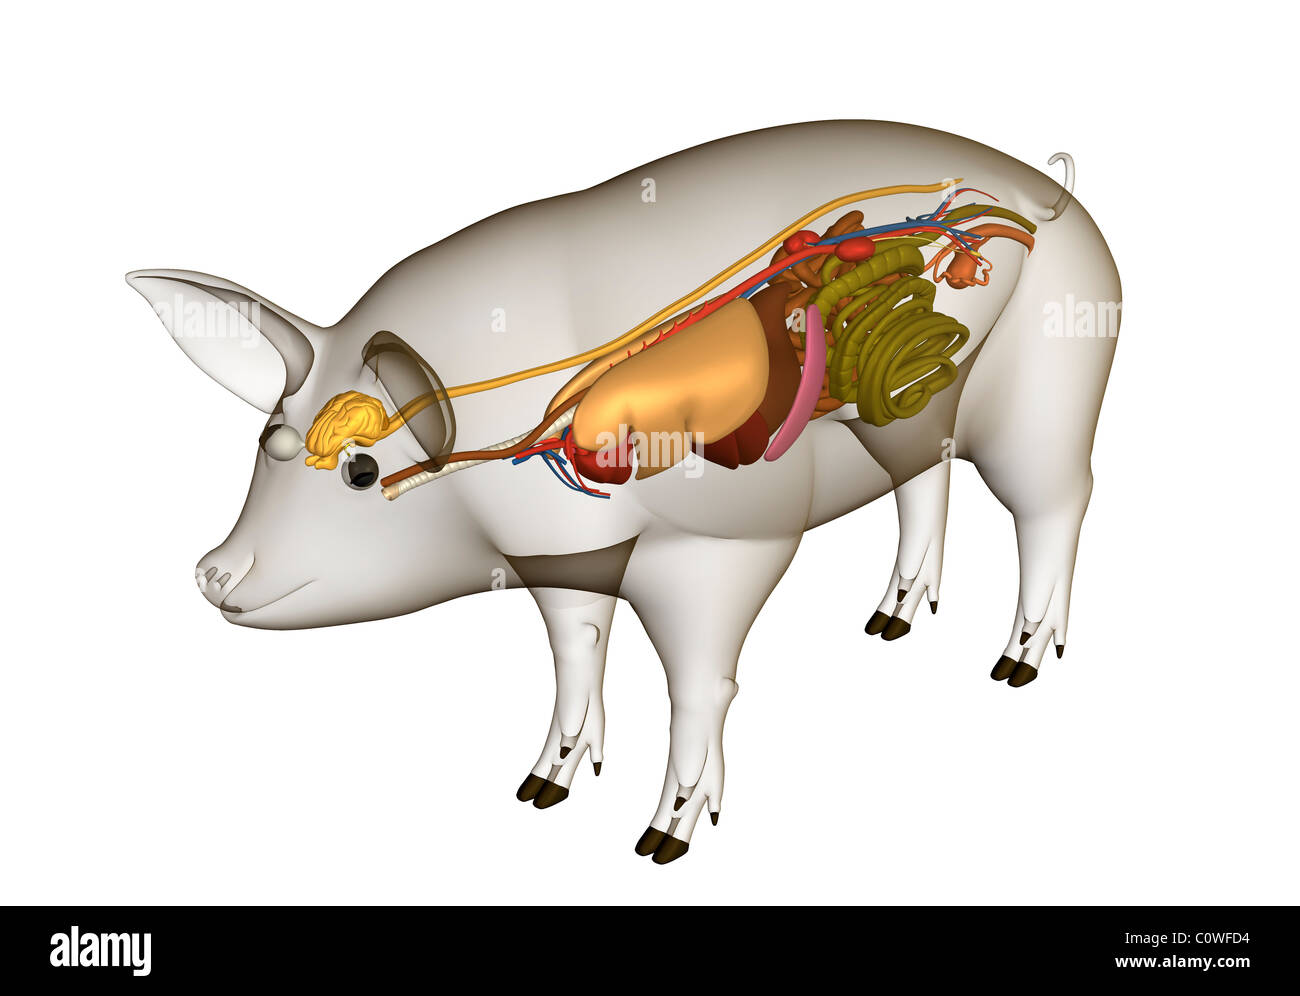 Pig Anatomy Organs With Transparent Body Stock Photo 34981664 Alamy